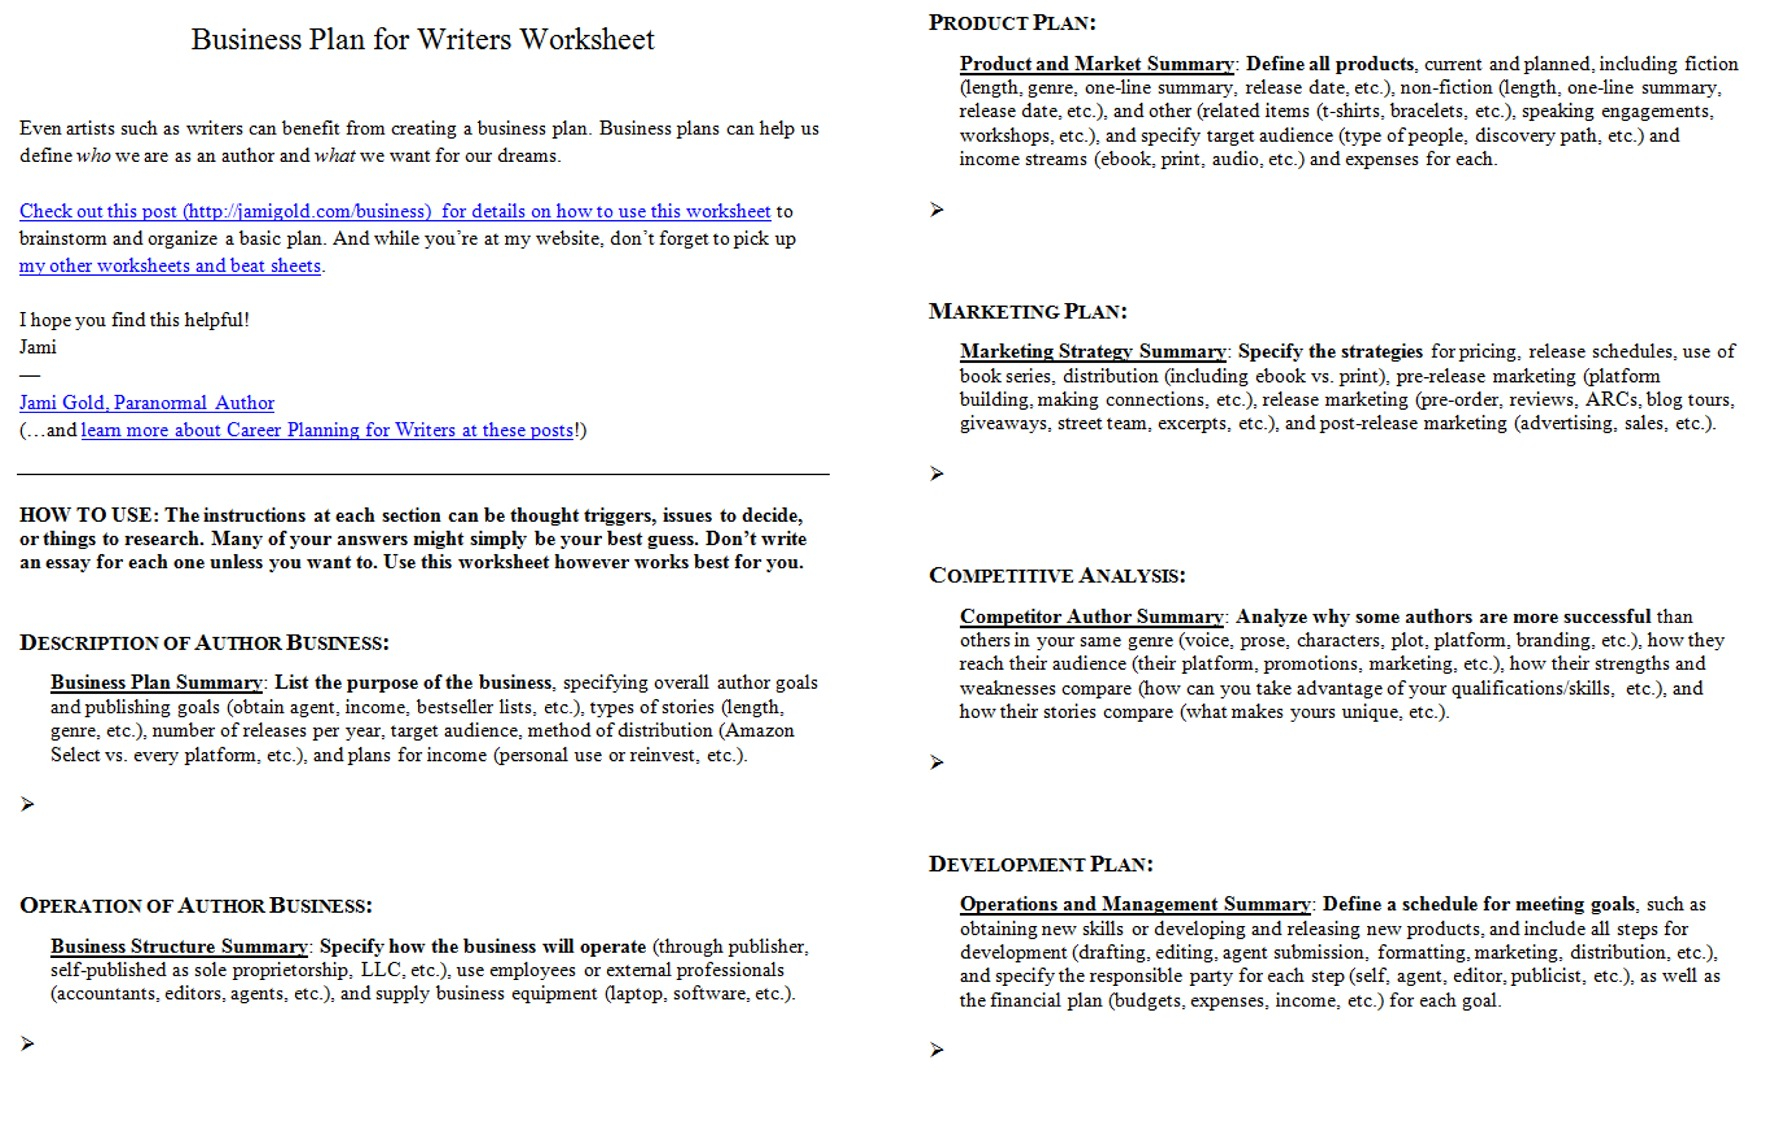 Weirdmailus  Ravishing Worksheets For Writers  Jami Gold Paranormal Author With Goodlooking Screen Shot Of Both Pages Of The Business Plan For Writers Worksheet With Attractive Research Paper Outline Worksheet Also Th Grade Math Problems Worksheet In Addition Solar Energy Worksheets And Context Clues Worksheets For Nd Grade As Well As Nouns Verbs Adjectives Adverbs Worksheets Additionally Nd Grade Science Worksheets Free From Jamigoldcom With Weirdmailus  Goodlooking Worksheets For Writers  Jami Gold Paranormal Author With Attractive Screen Shot Of Both Pages Of The Business Plan For Writers Worksheet And Ravishing Research Paper Outline Worksheet Also Th Grade Math Problems Worksheet In Addition Solar Energy Worksheets From Jamigoldcom